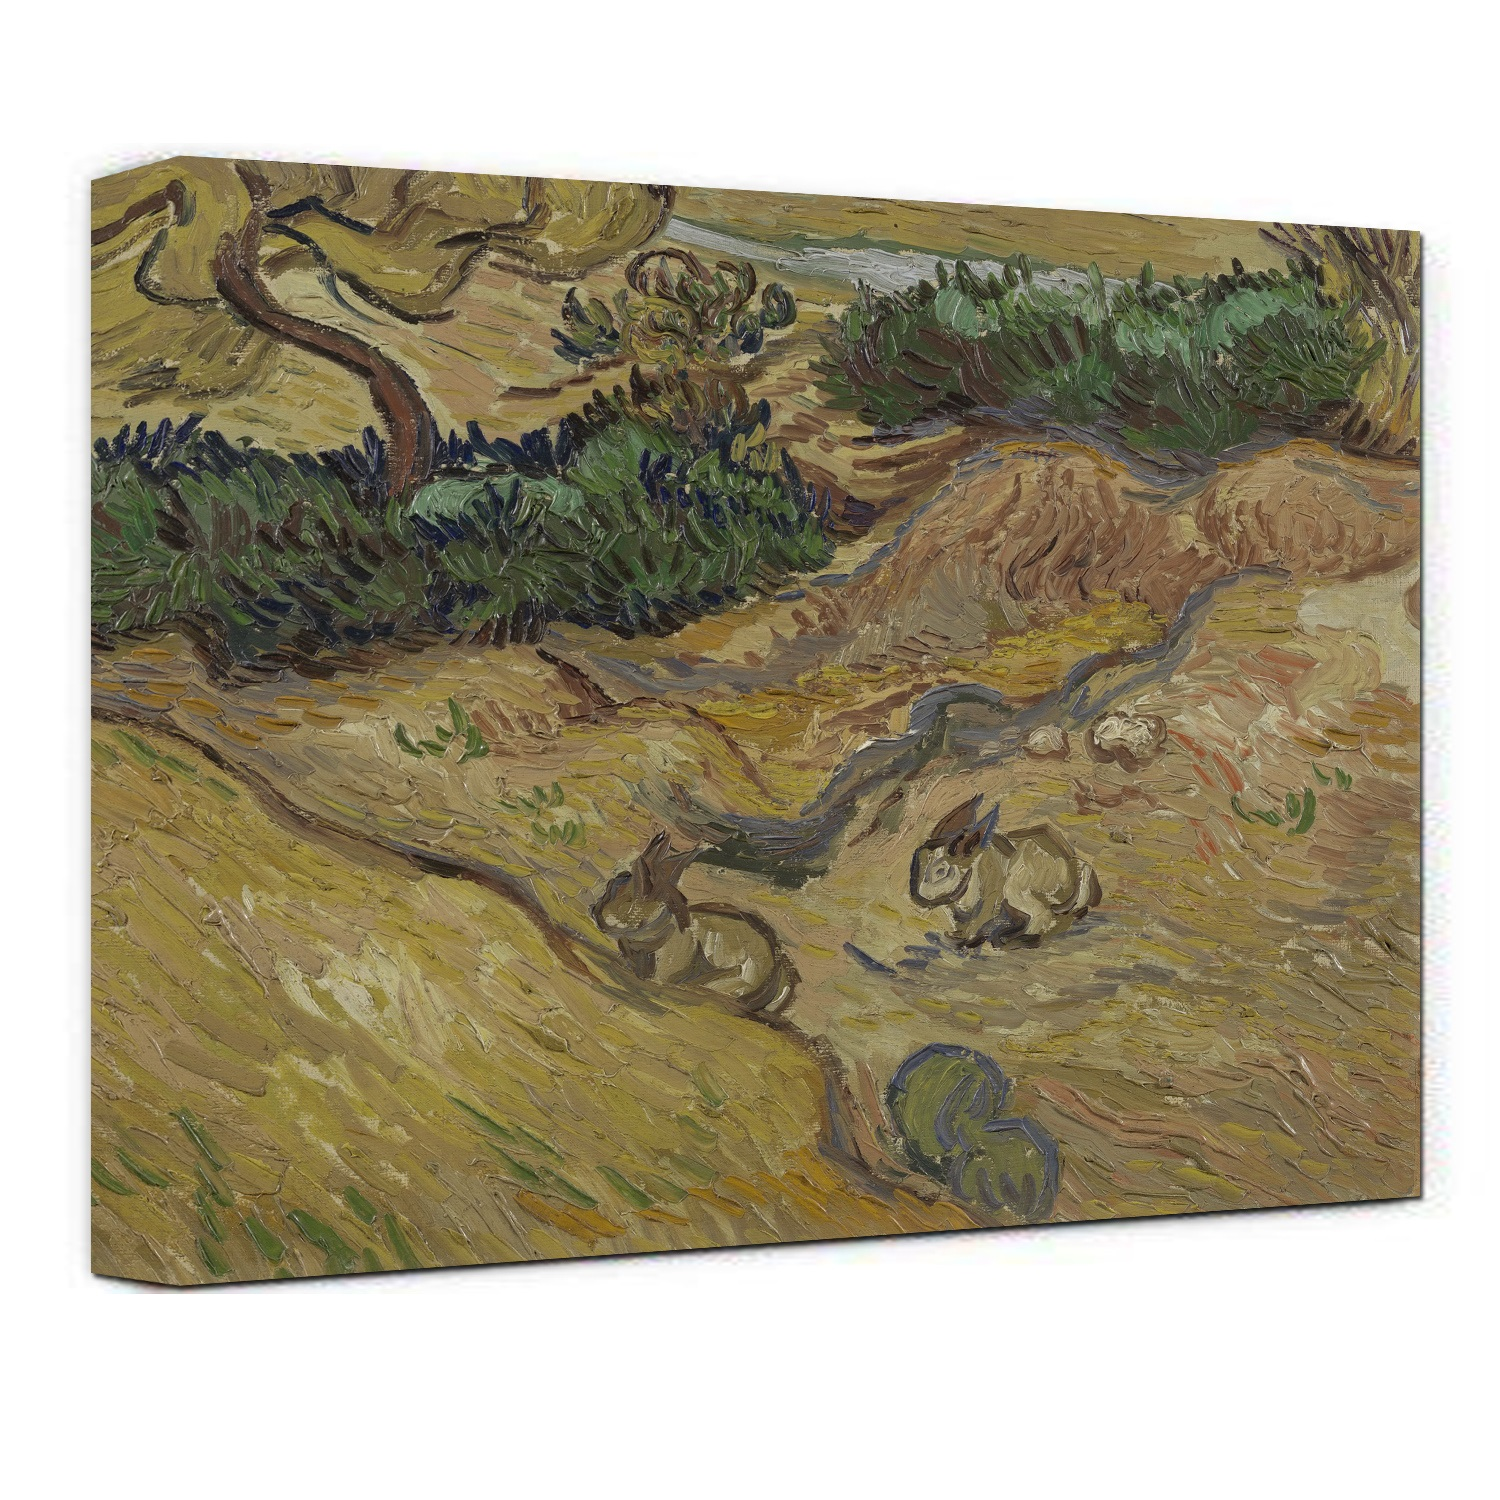 Hand Painted Landscape with Rabbits by Vincent Van Gogh oil painting-Floral Canvas Wall Art